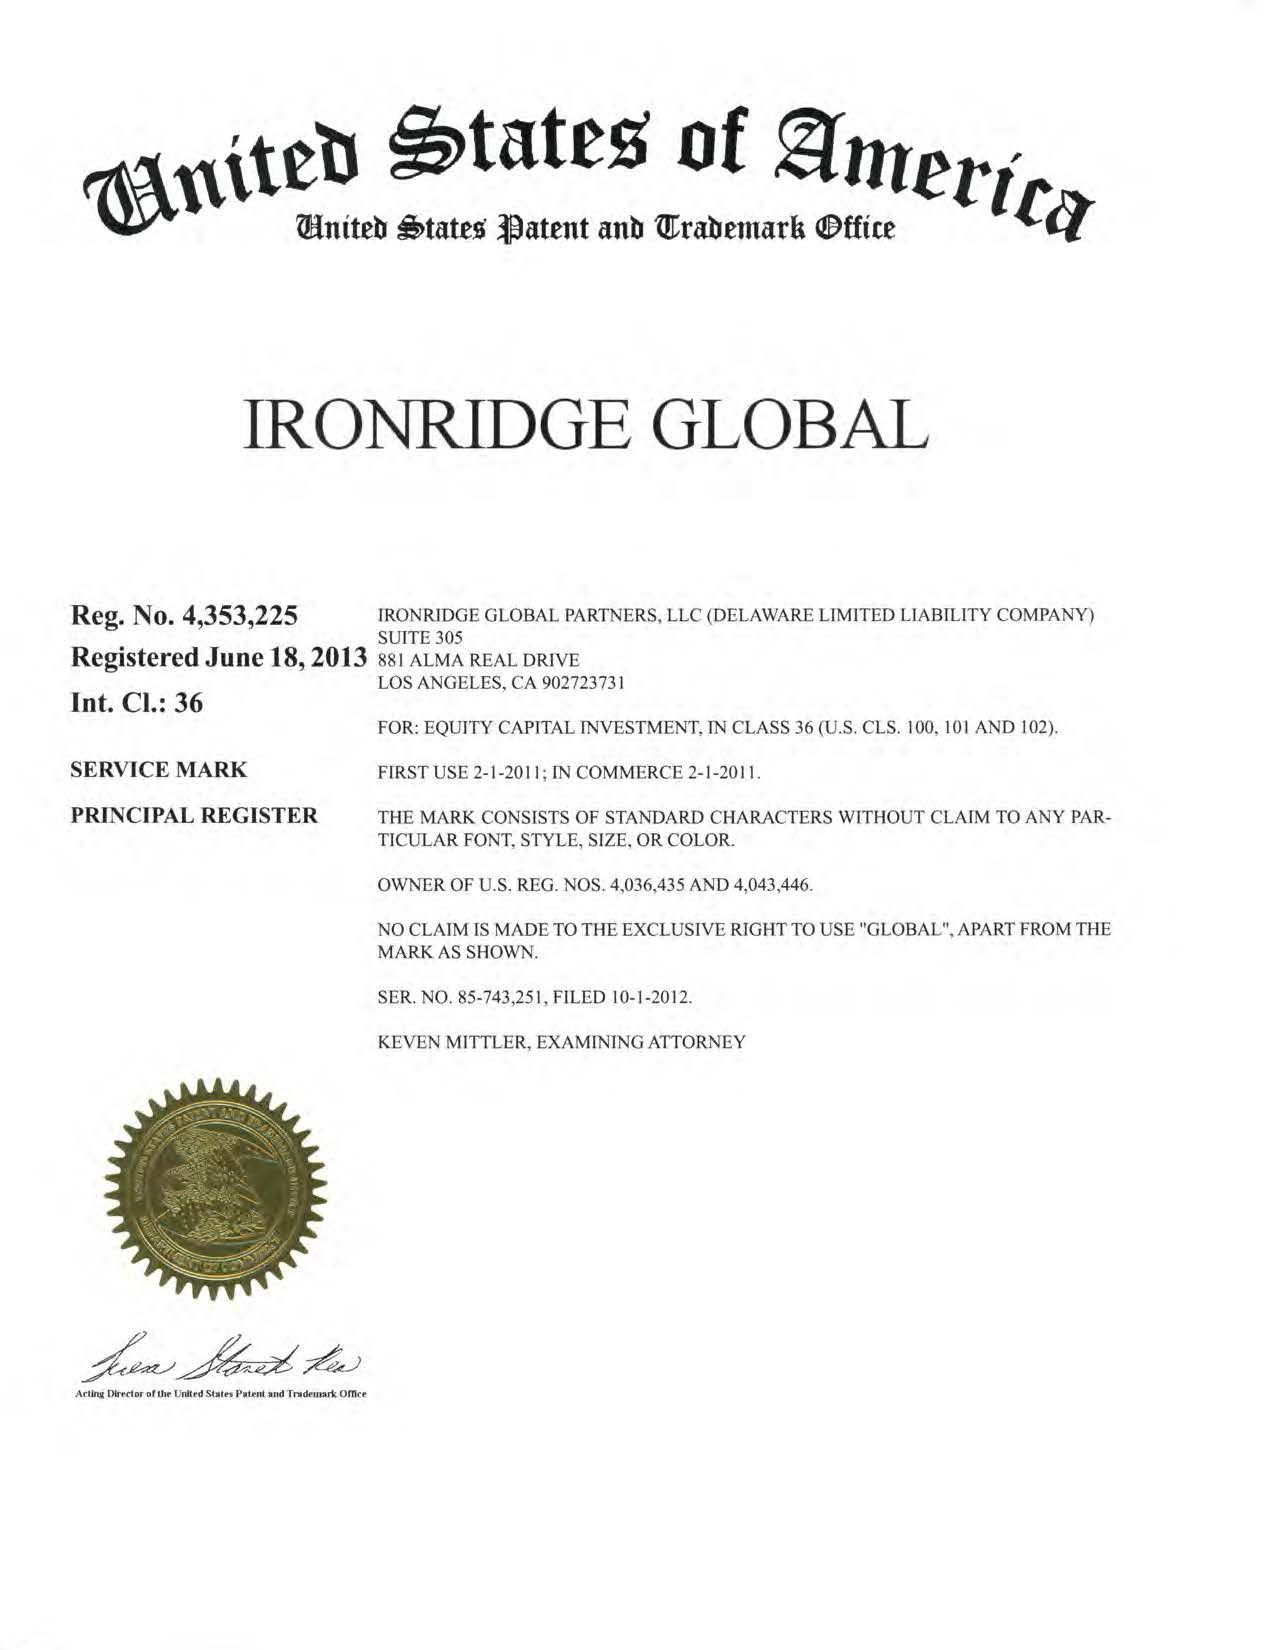 8 best ironridge global partners trademarks images on pinterest 8 best ironridge global partners trademarks images on pinterest trademark application trademark registration and certificate xflitez Image collections